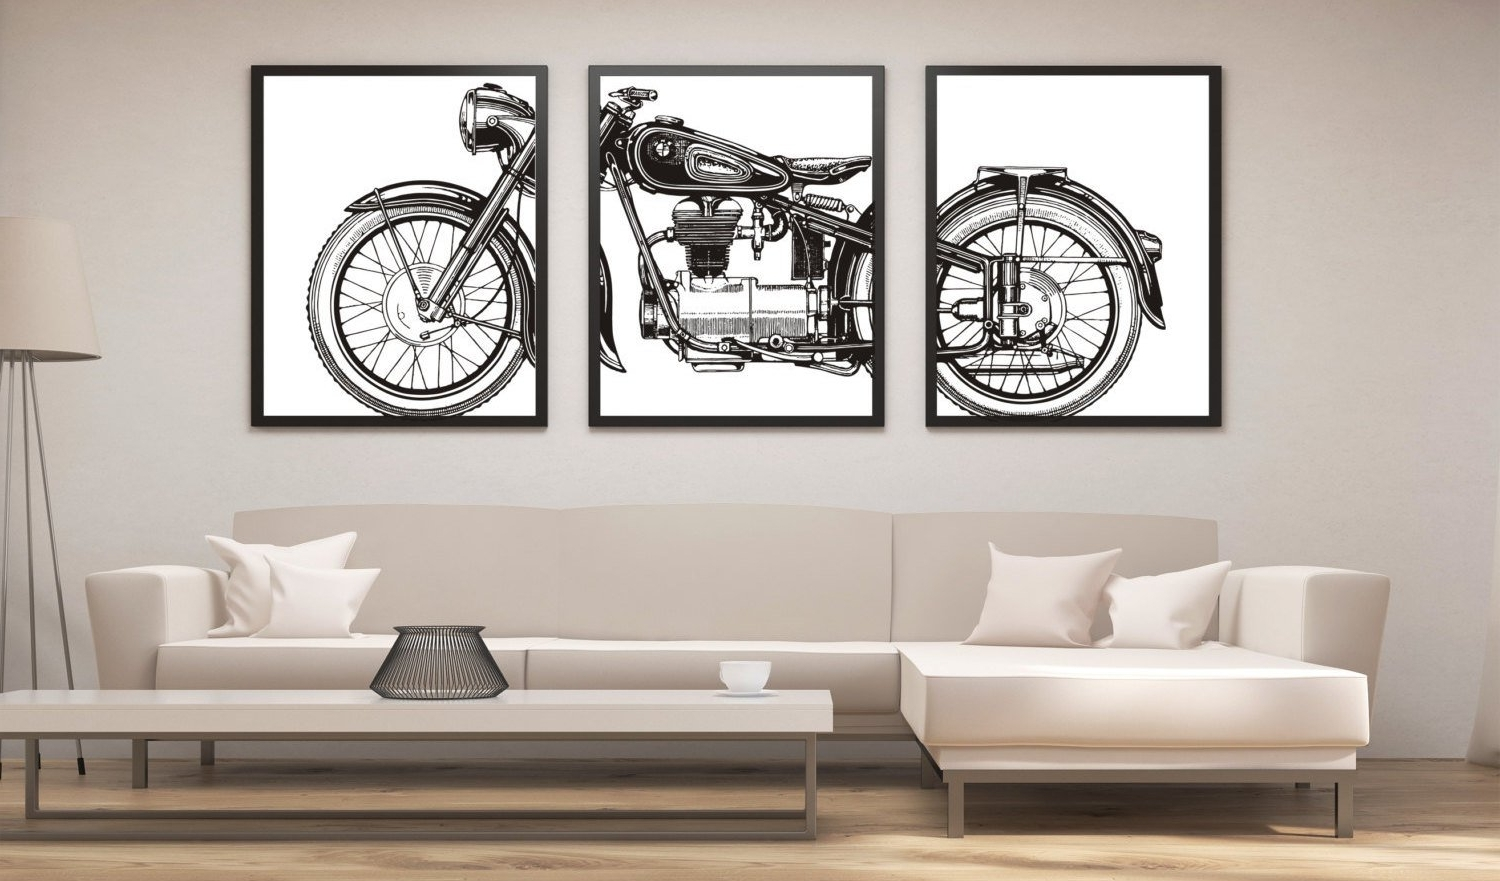 Preferred Motorcycle Print Set, Motorcycle Panel Art, Panel Wall Art With Motorcycle Wall Art (View 17 of 20)